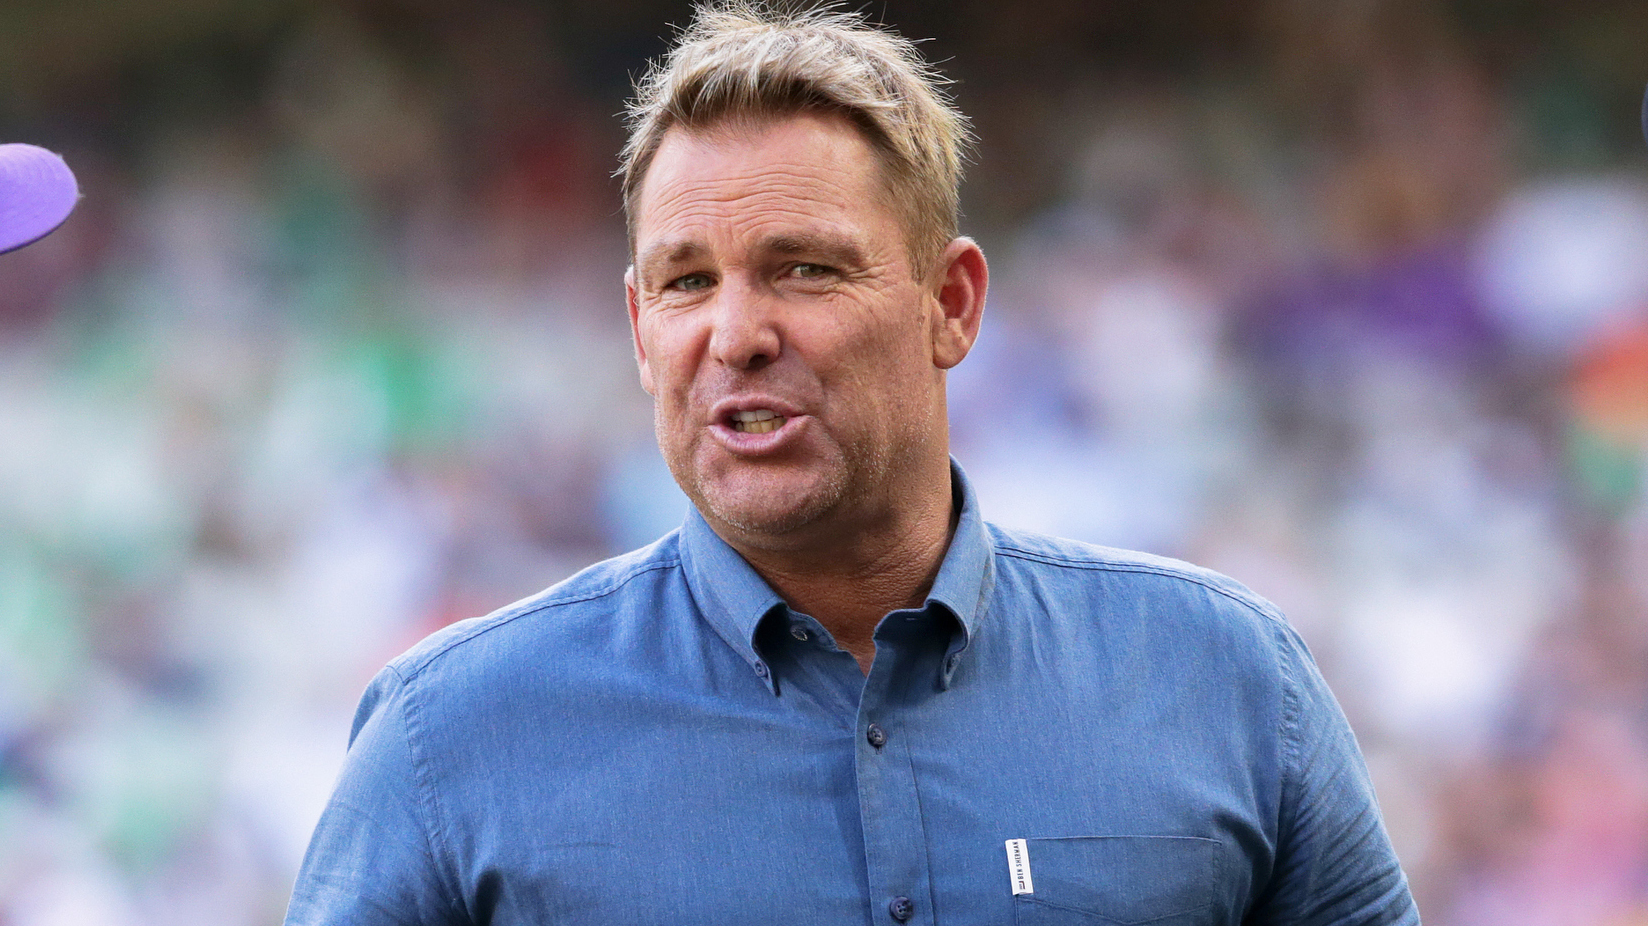 Shane Warne World Cup omission 'ludicrous', says Peter FitzSimons